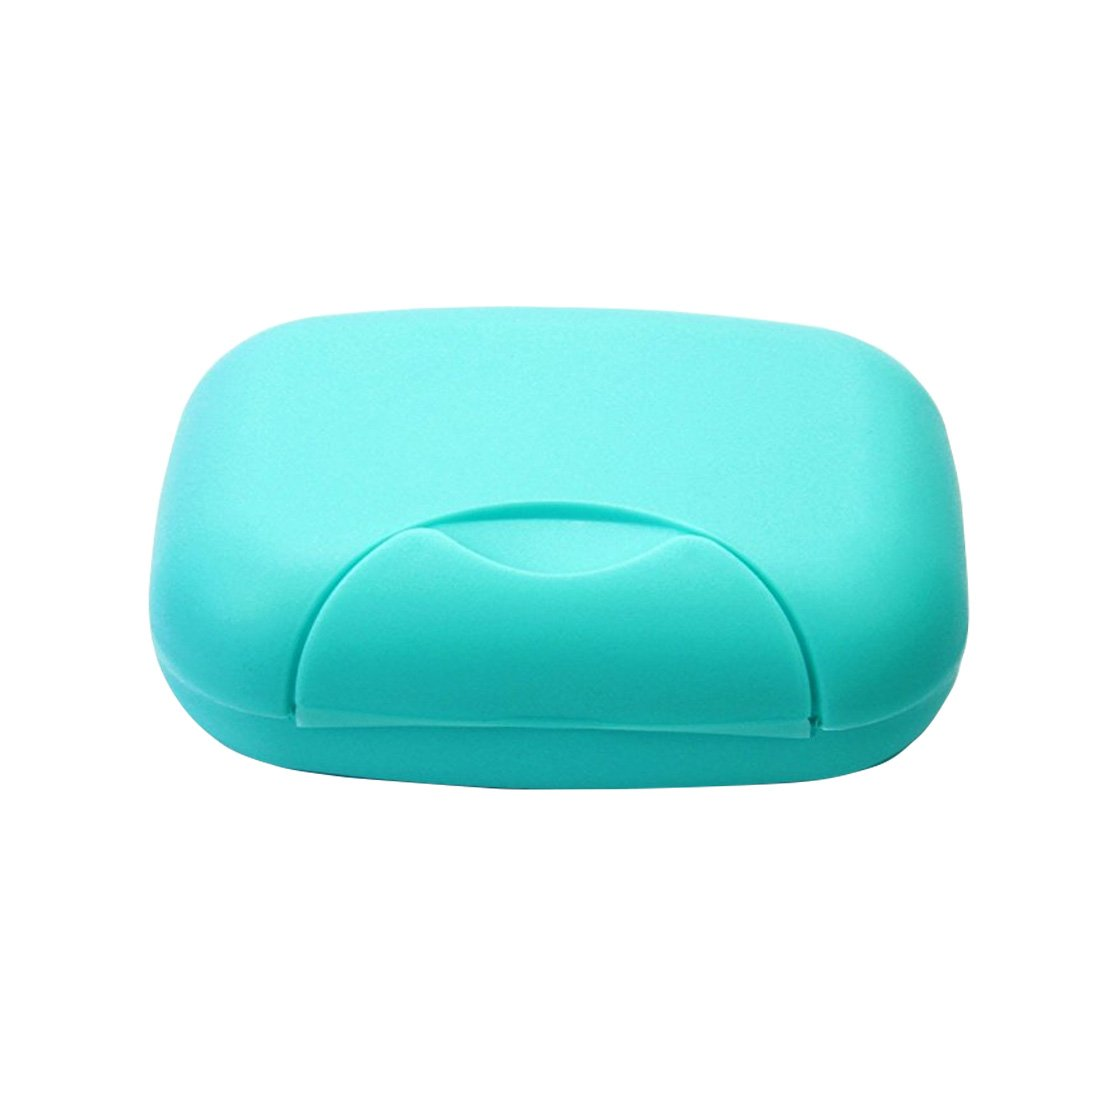 ASKCUT Fashionable Travel Portable Soap Box Dishes,Creative Home Bathroom Soap Case with Plastic Seal Waterproof Leakproof(Blue)